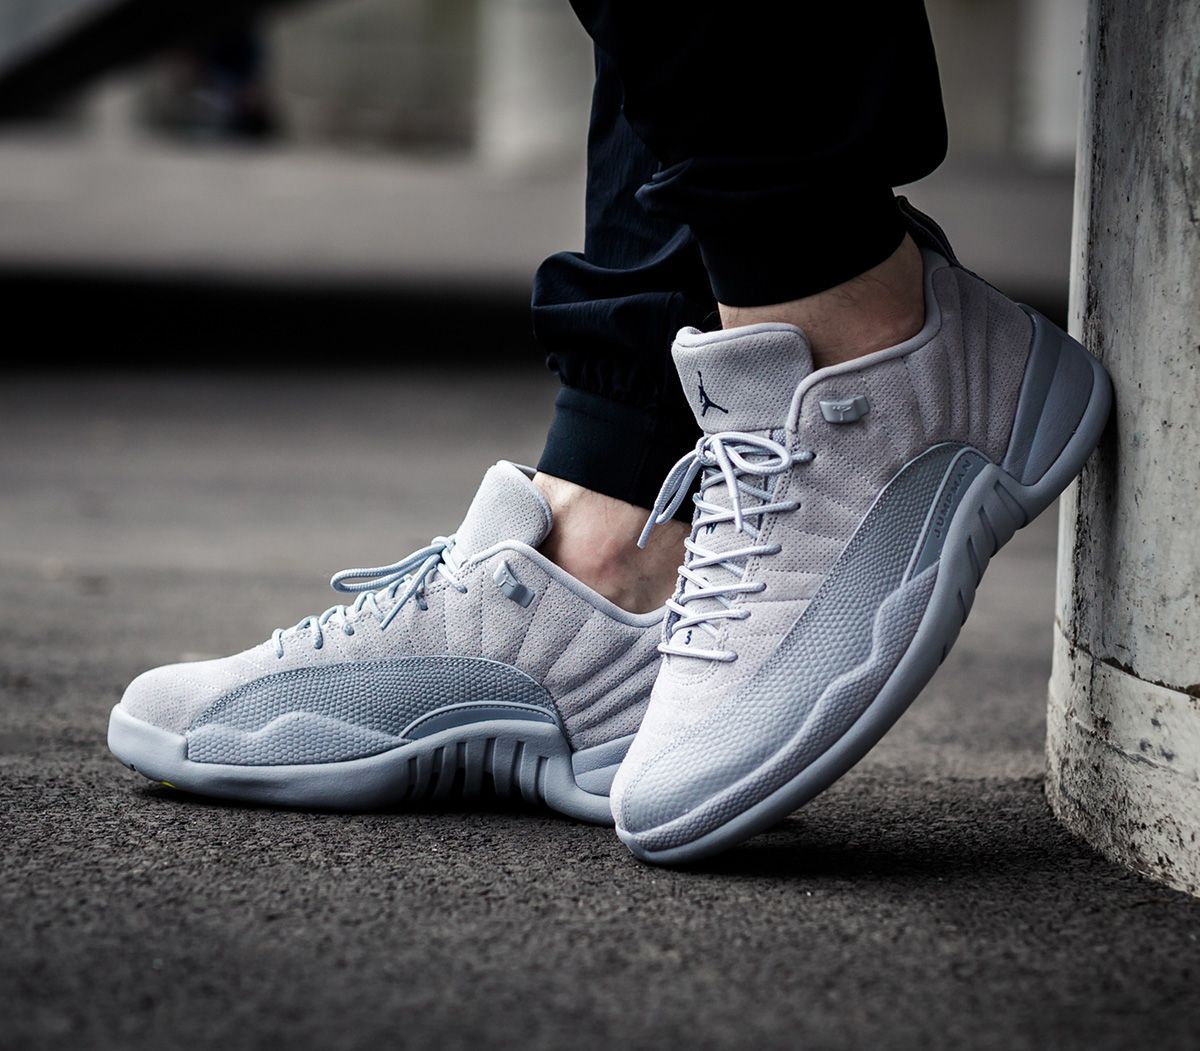 1dc05f2353b1 On-Foot  Air Jordan 12 Retro Low Wolf Grey Armory Navy Electric Lime - EU  Kicks  Sneaker Magazine